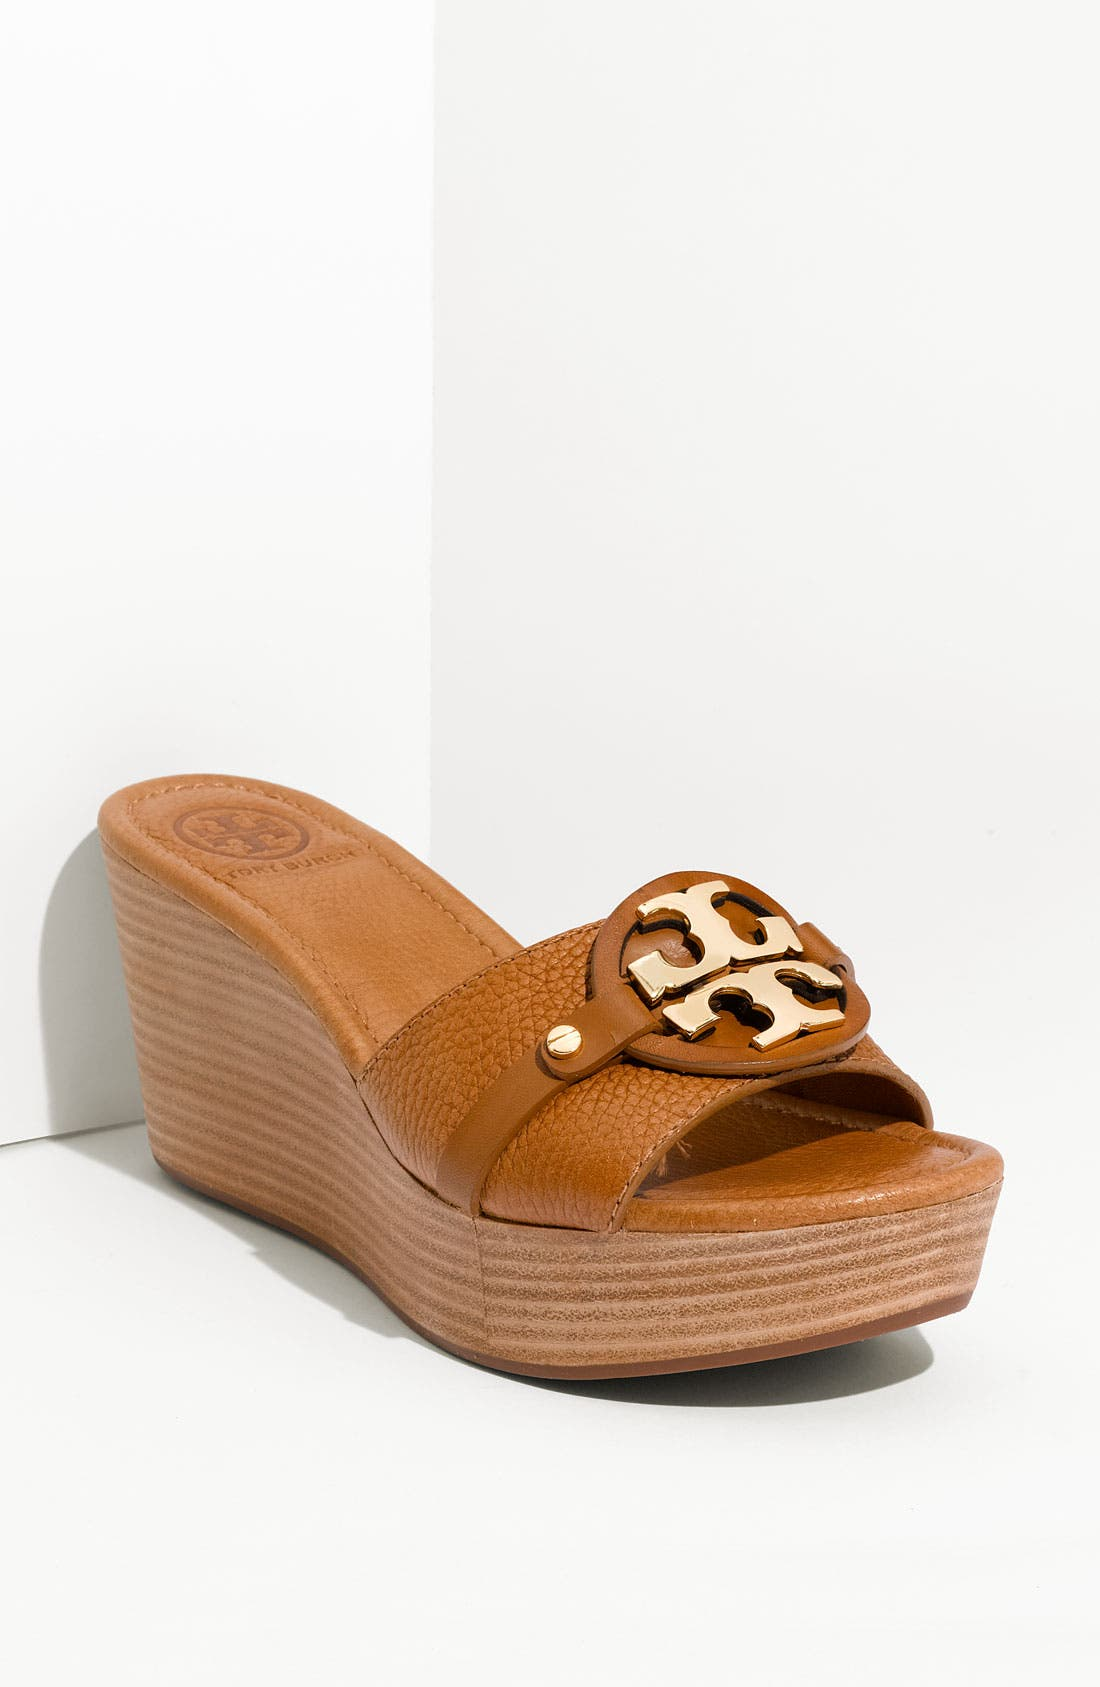 Main Image - Tory Burch 'Patti' Wedge Sandal